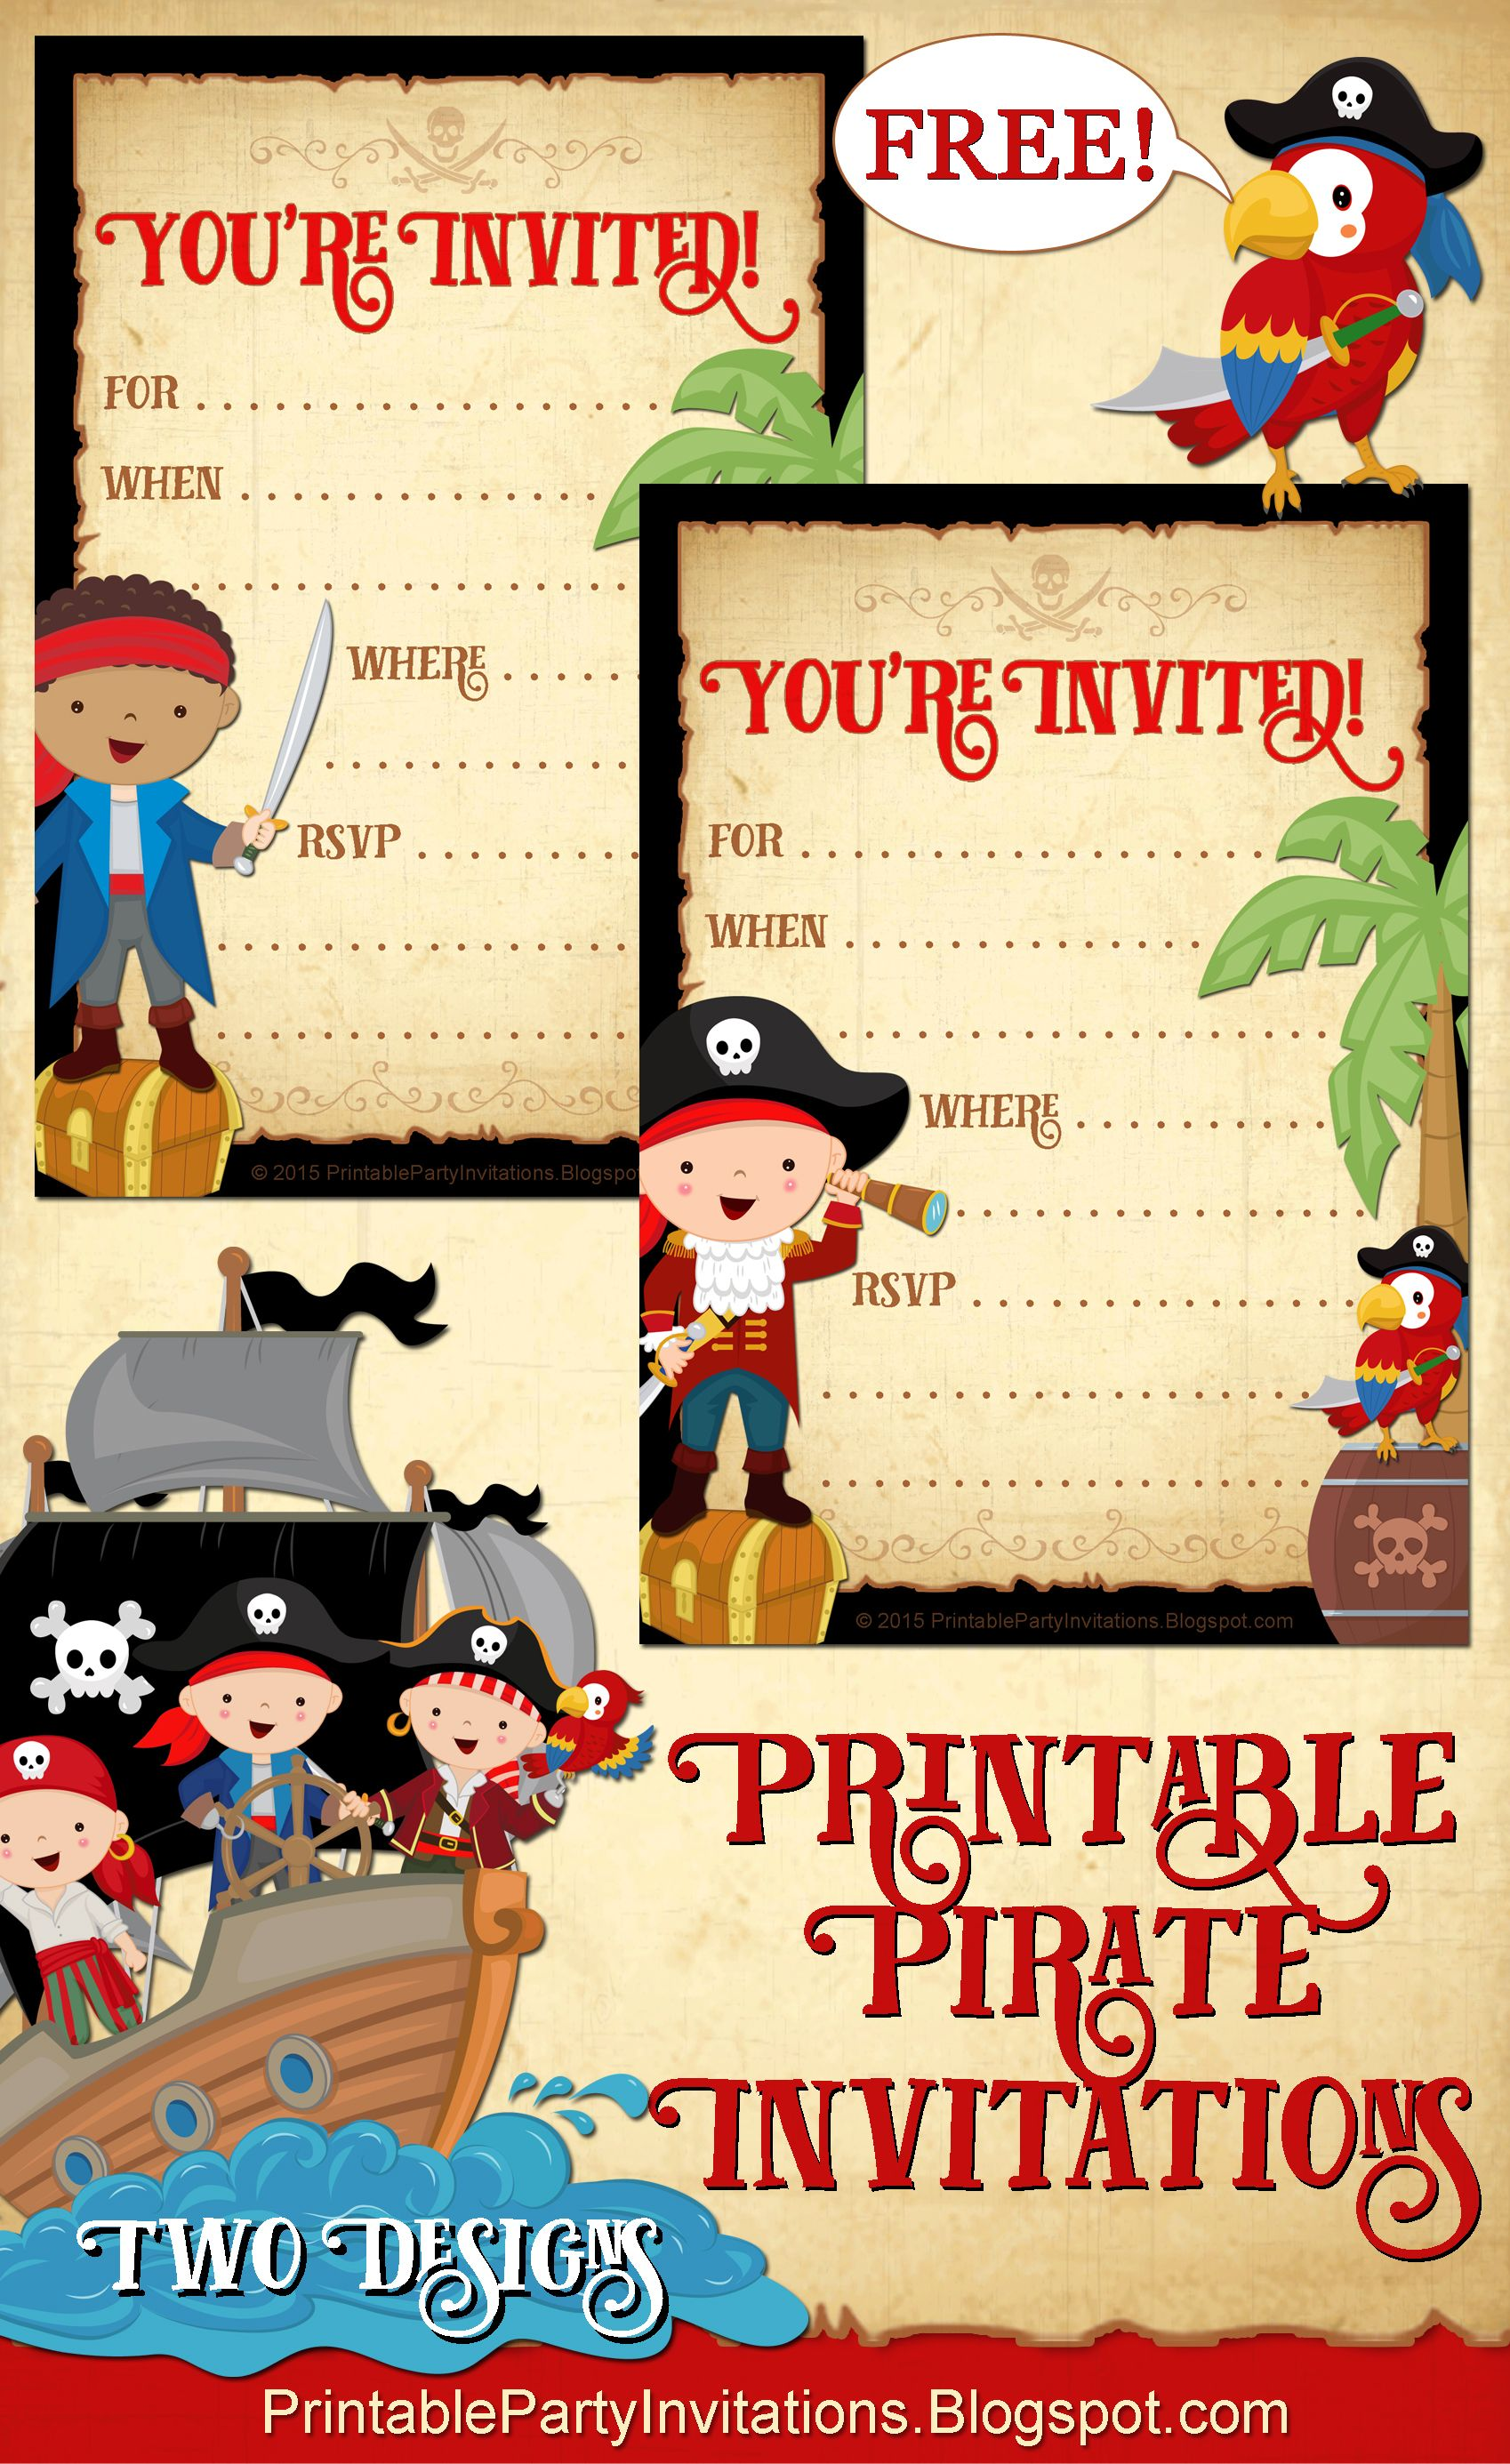 Free printable pirate party invitations 2 designs party free printable pirate party invitations 2 designs filmwisefo